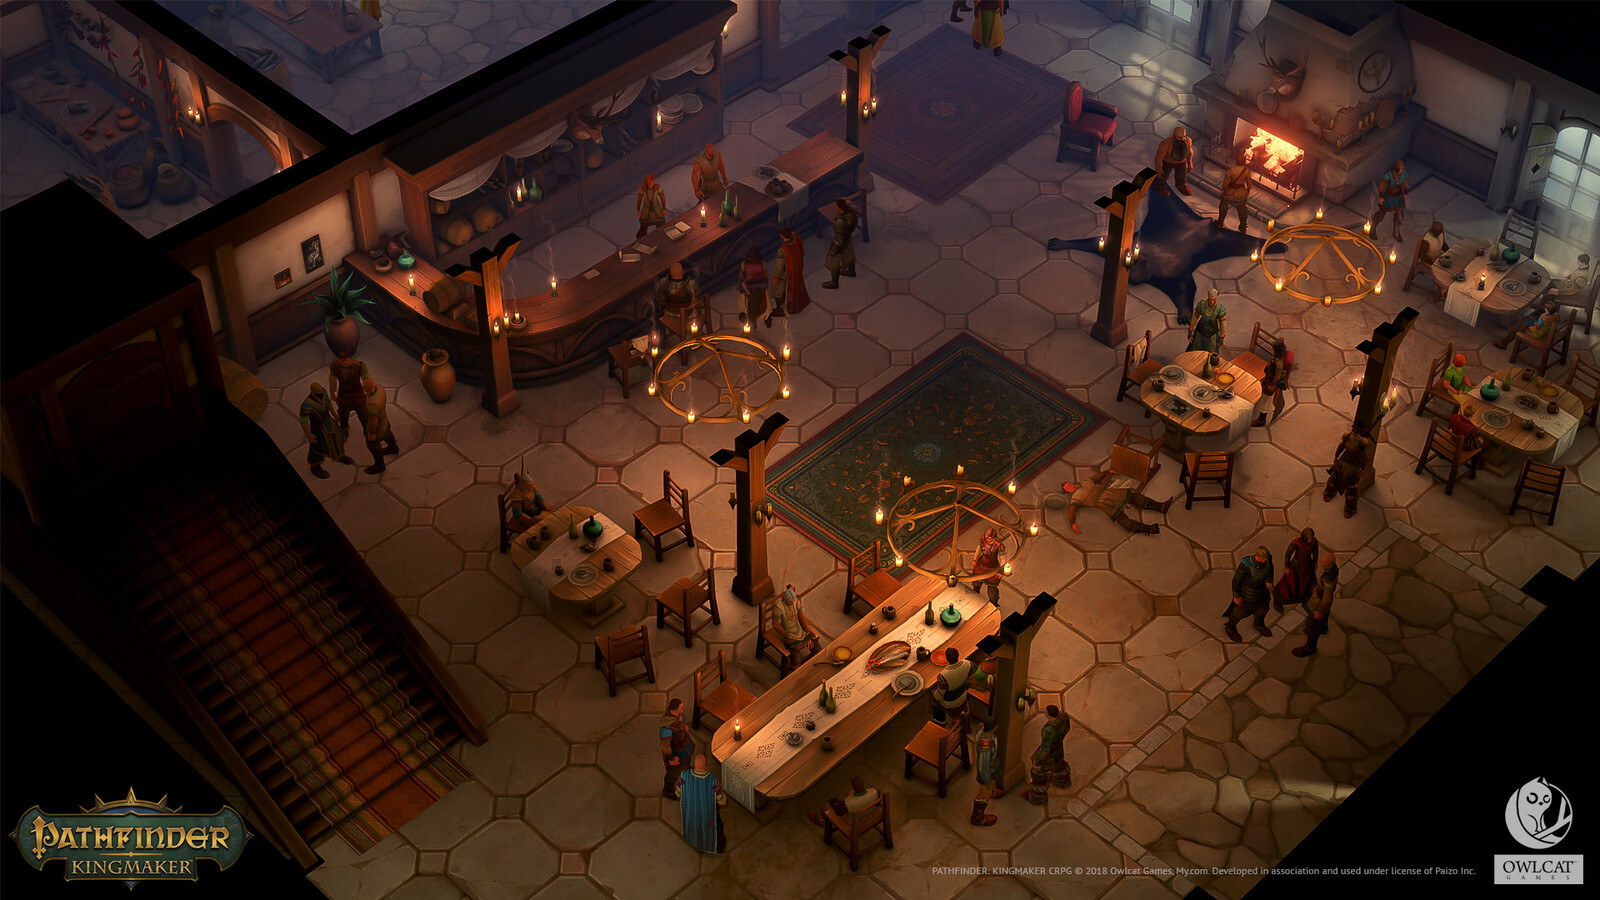 One of the ingame taverns